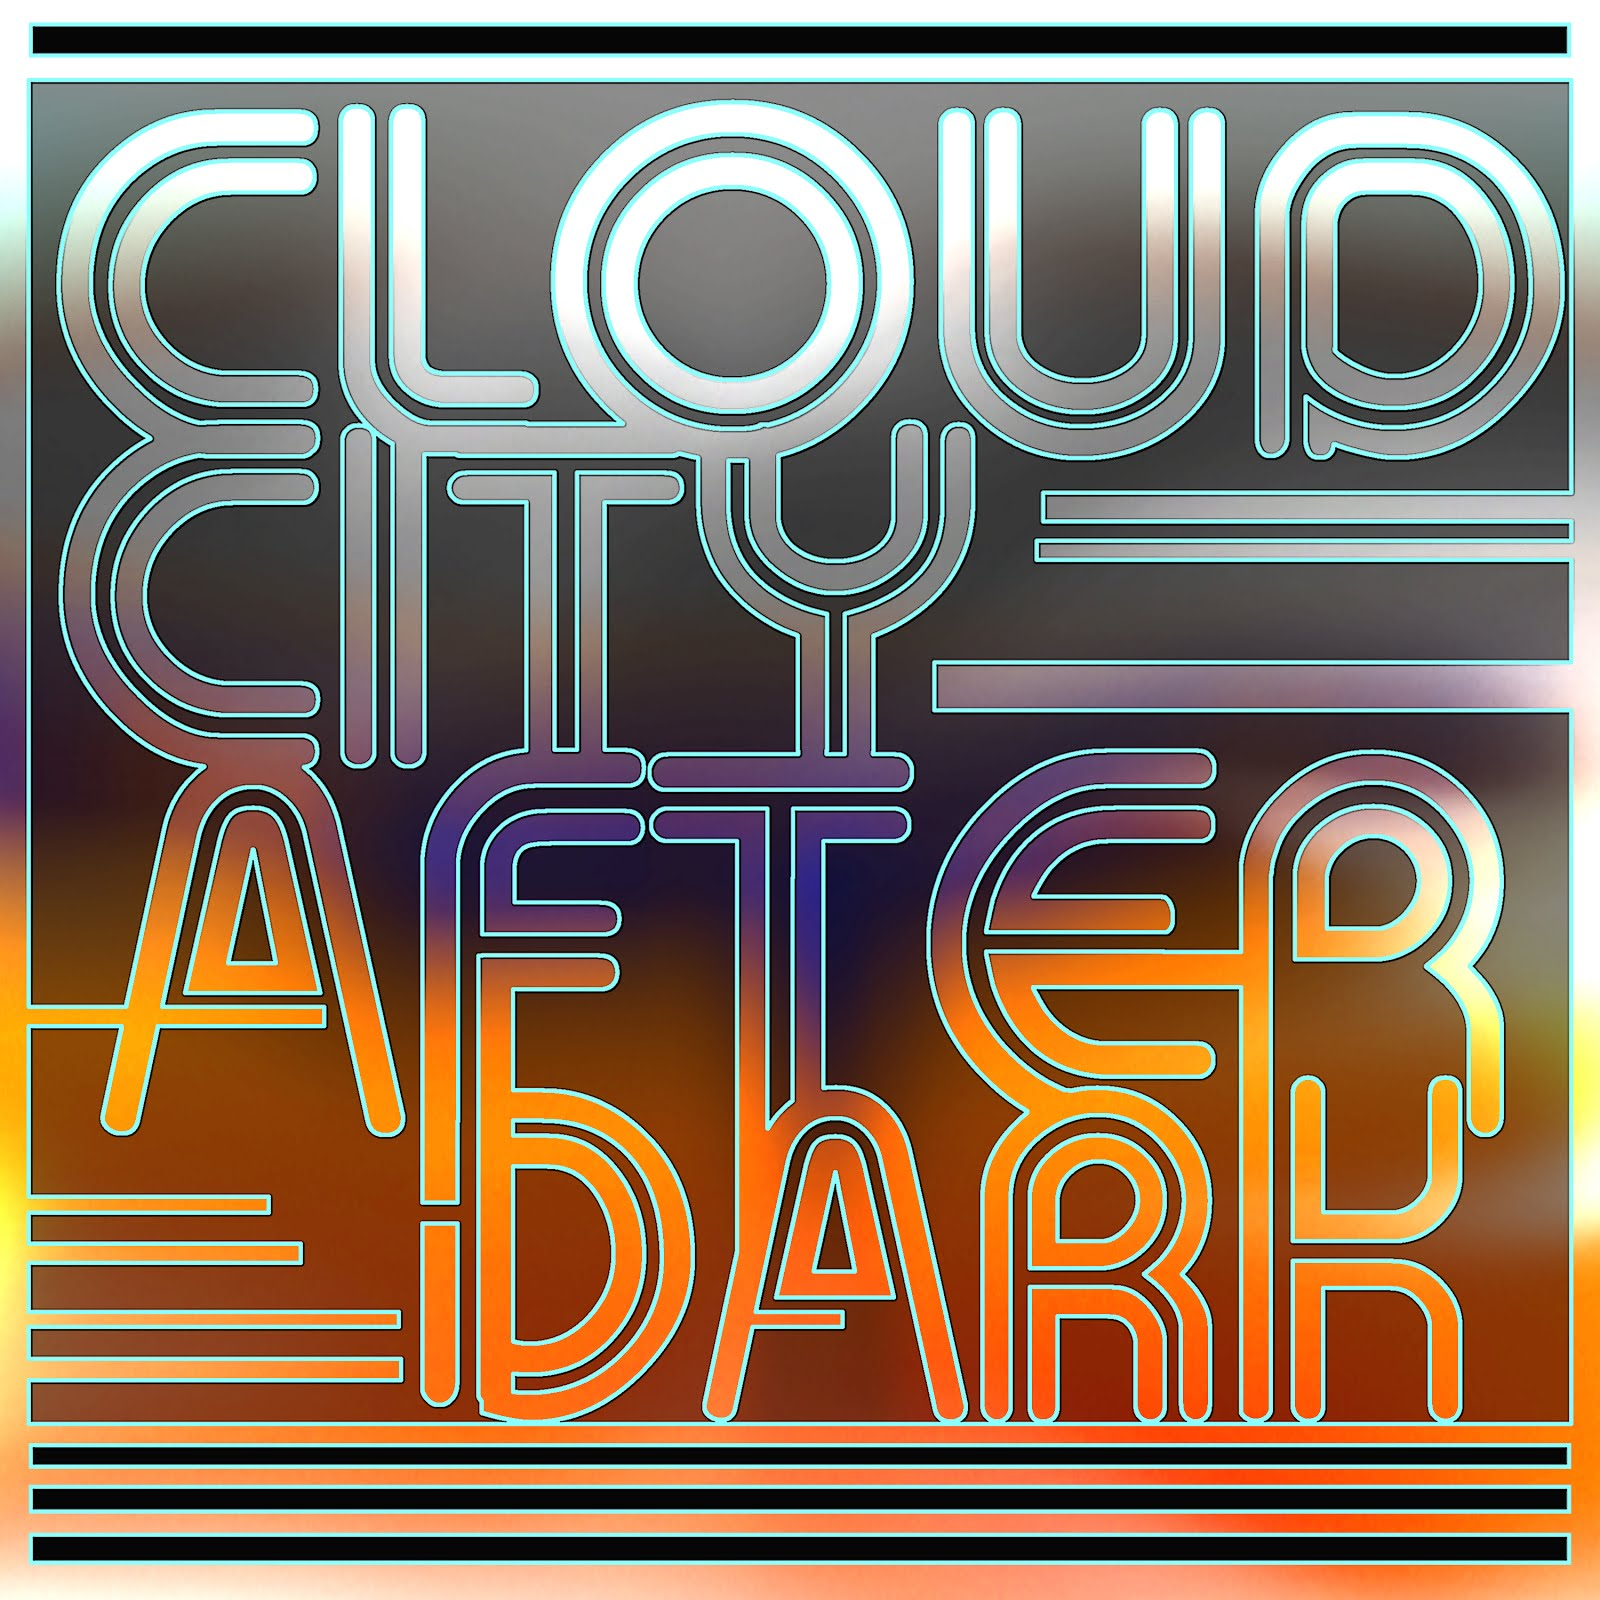 Join the Cloud City Social Club!